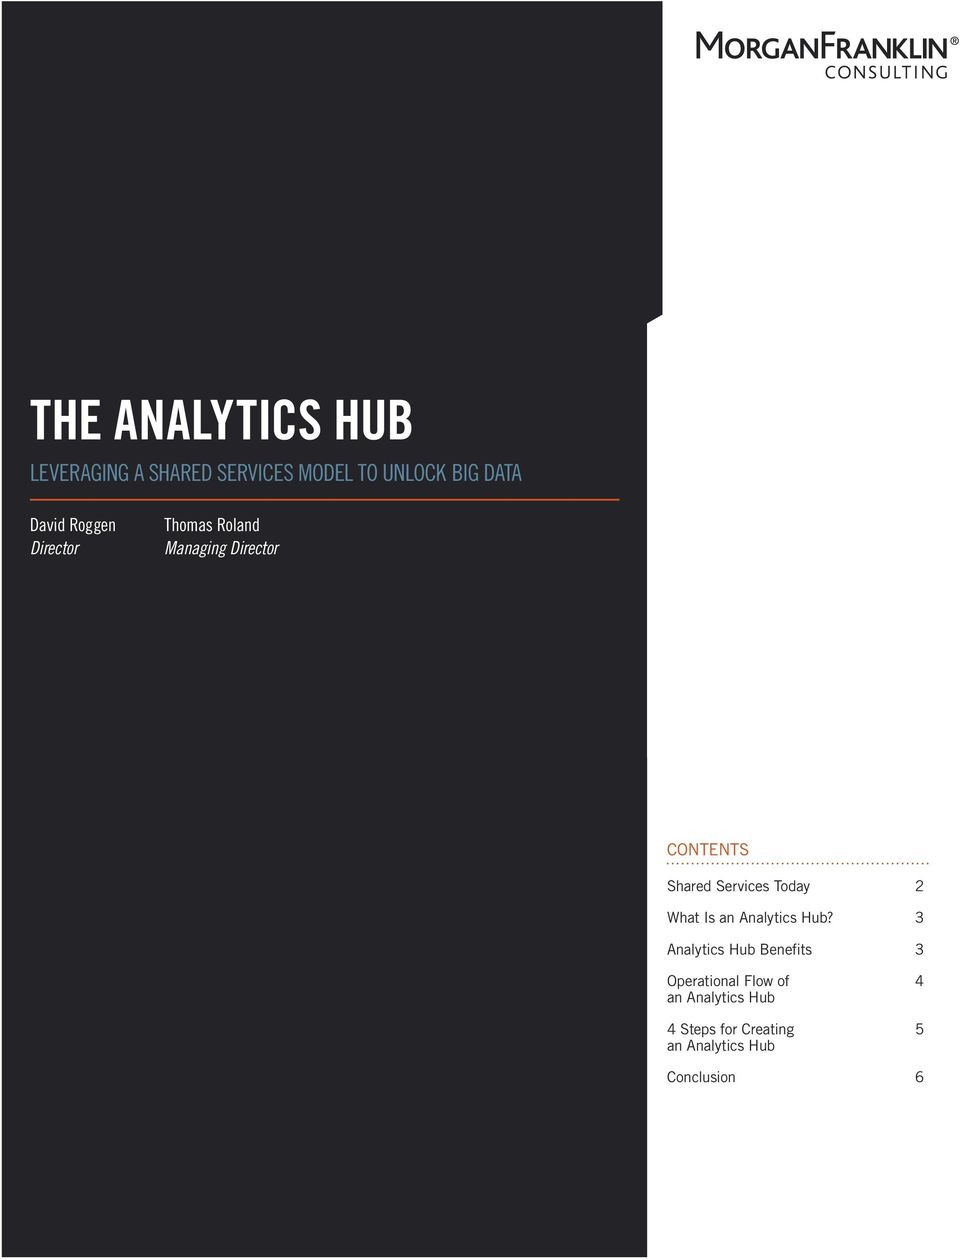 Services Today 2 What Is an Analytics Hub?